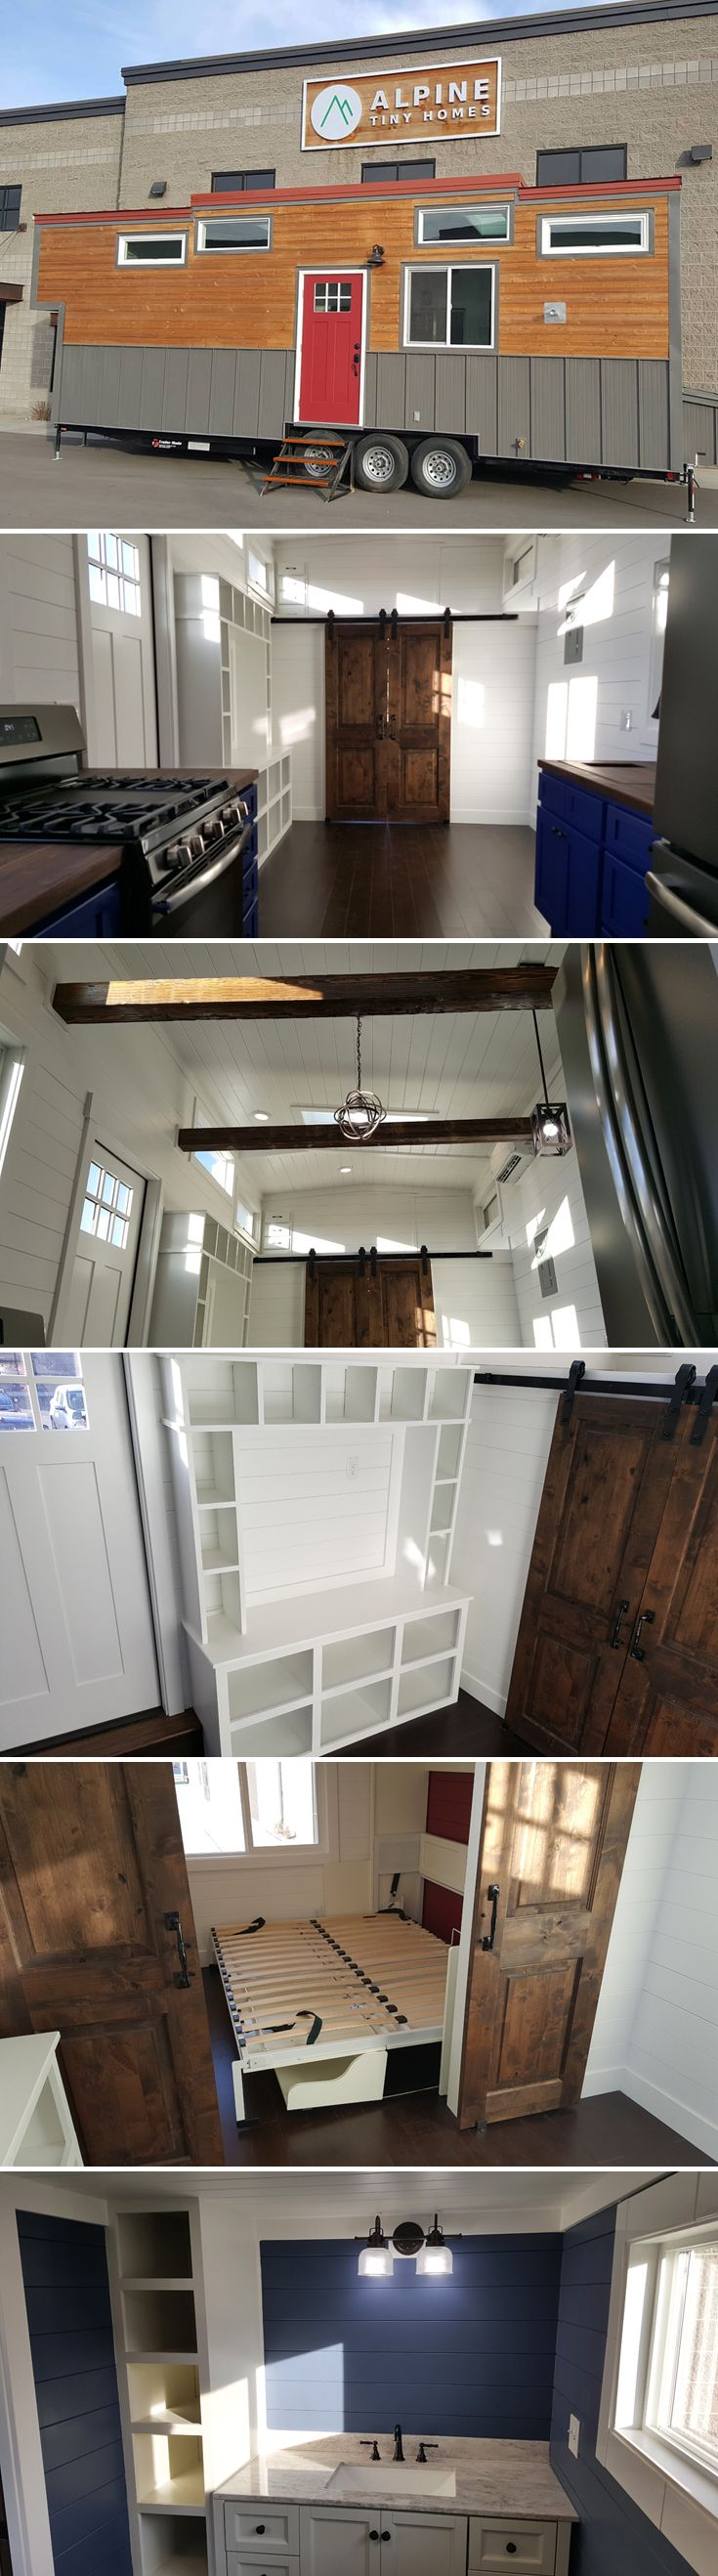 Best 25+ Tiny house furniture ideas on Pinterest | Tiny house ...